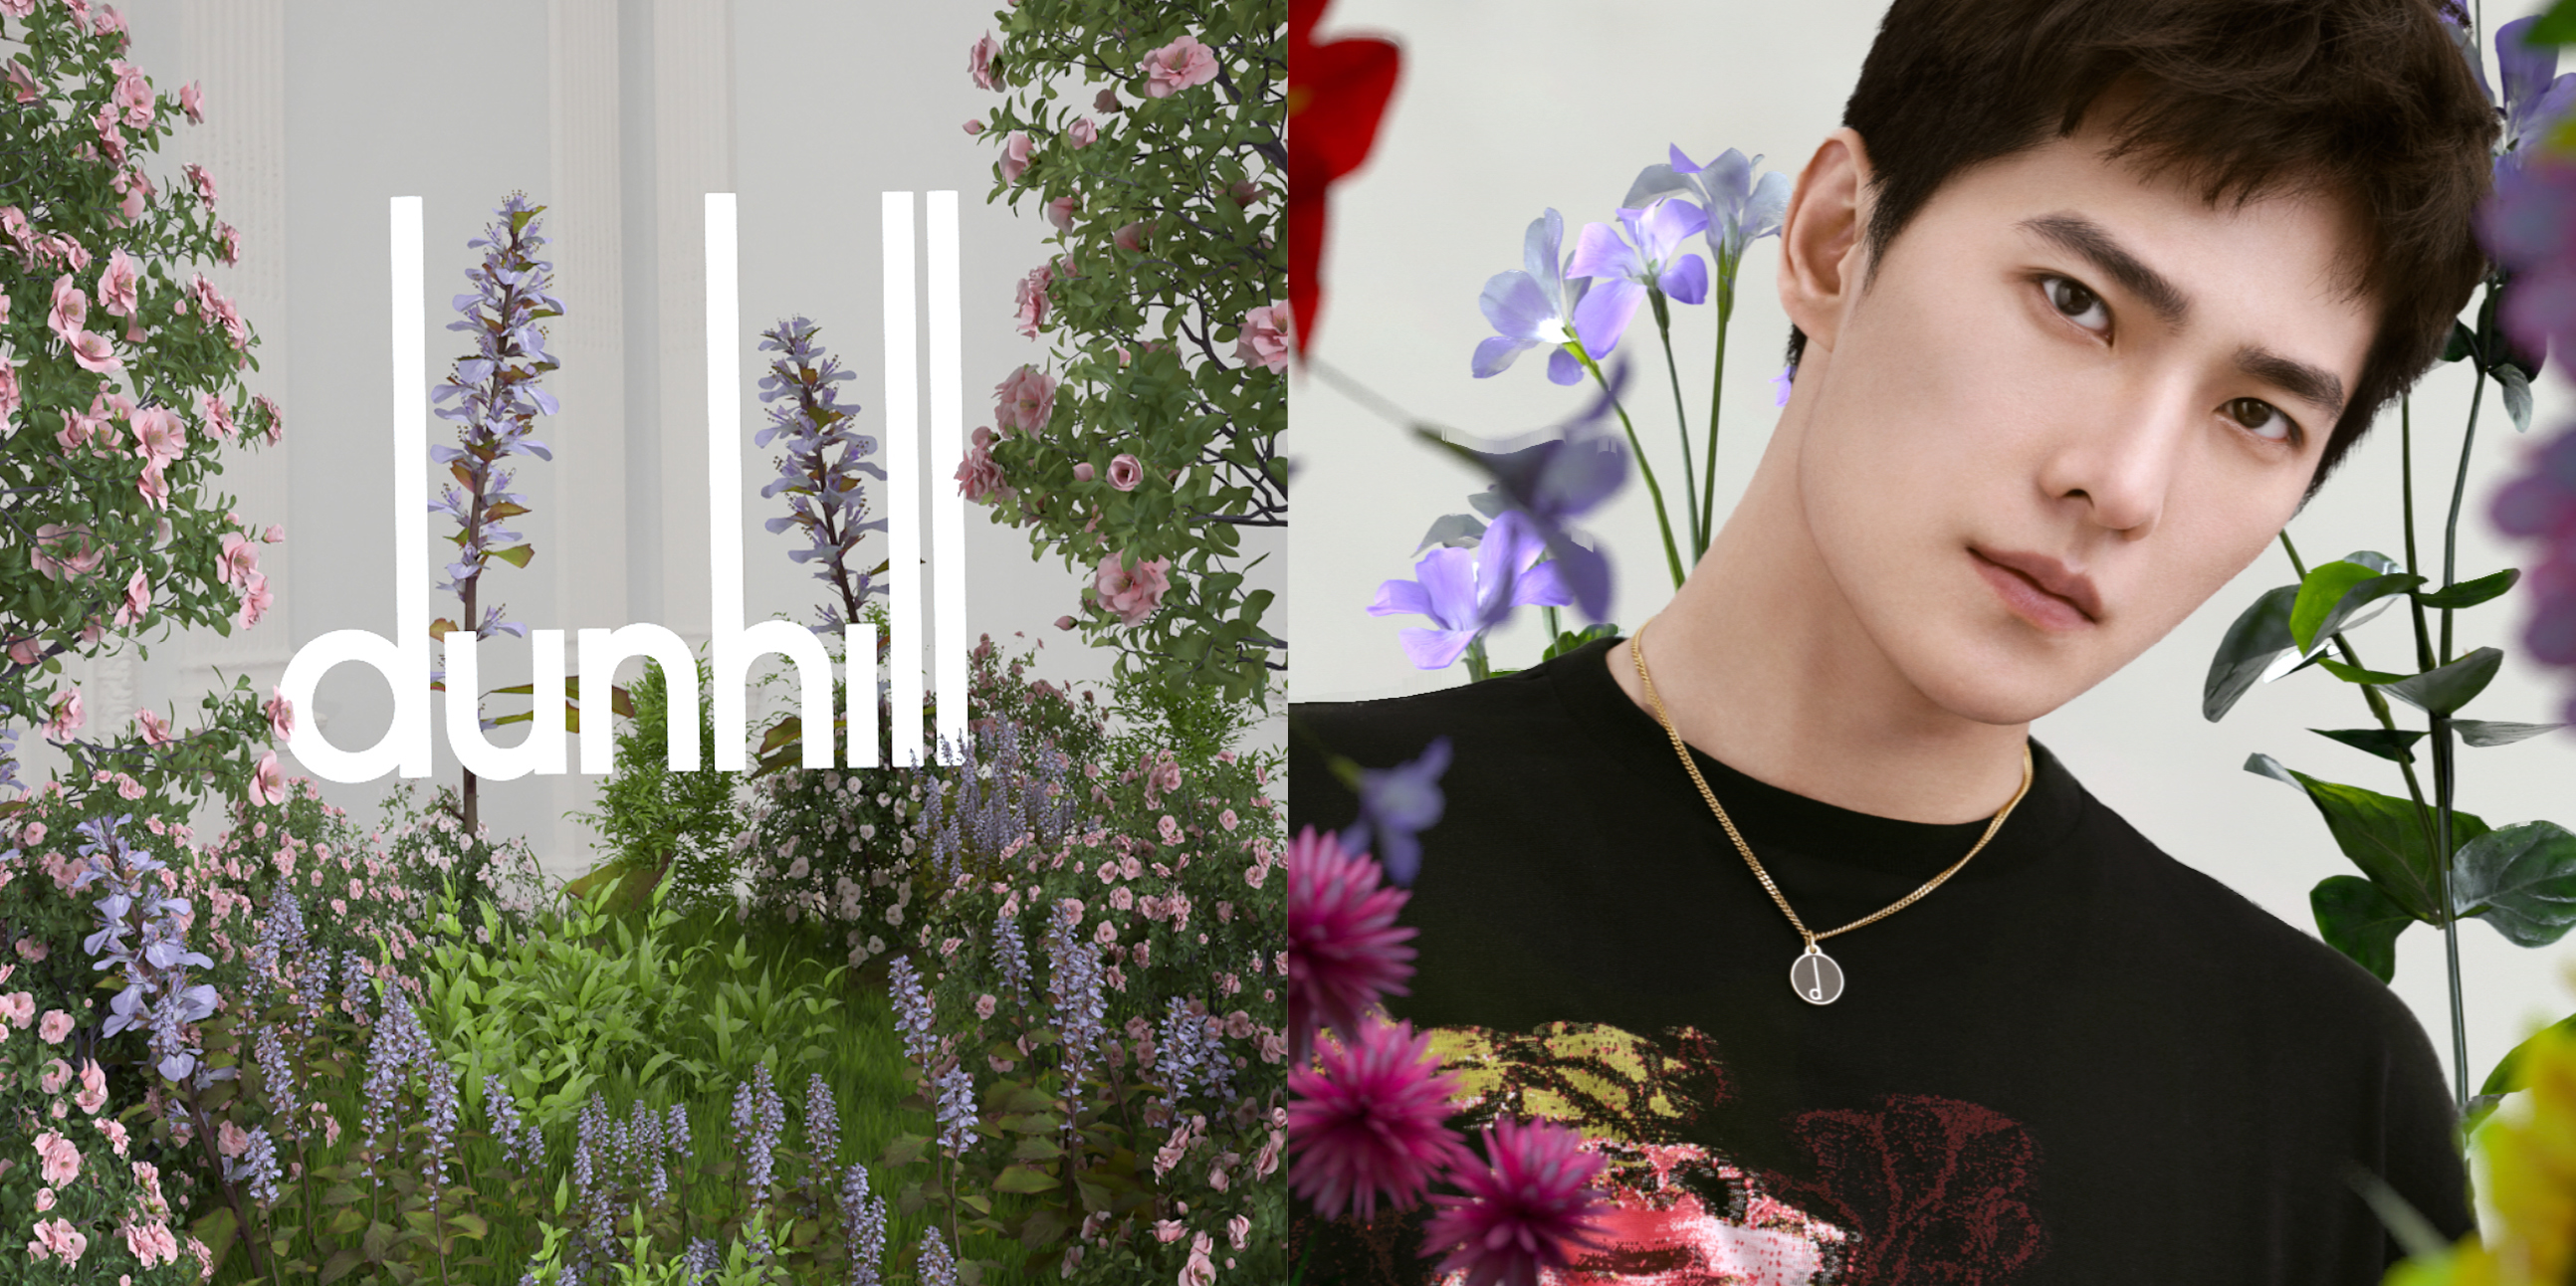 dunhill Abstract Florals印花胶囊系列礼赞七夕情人节